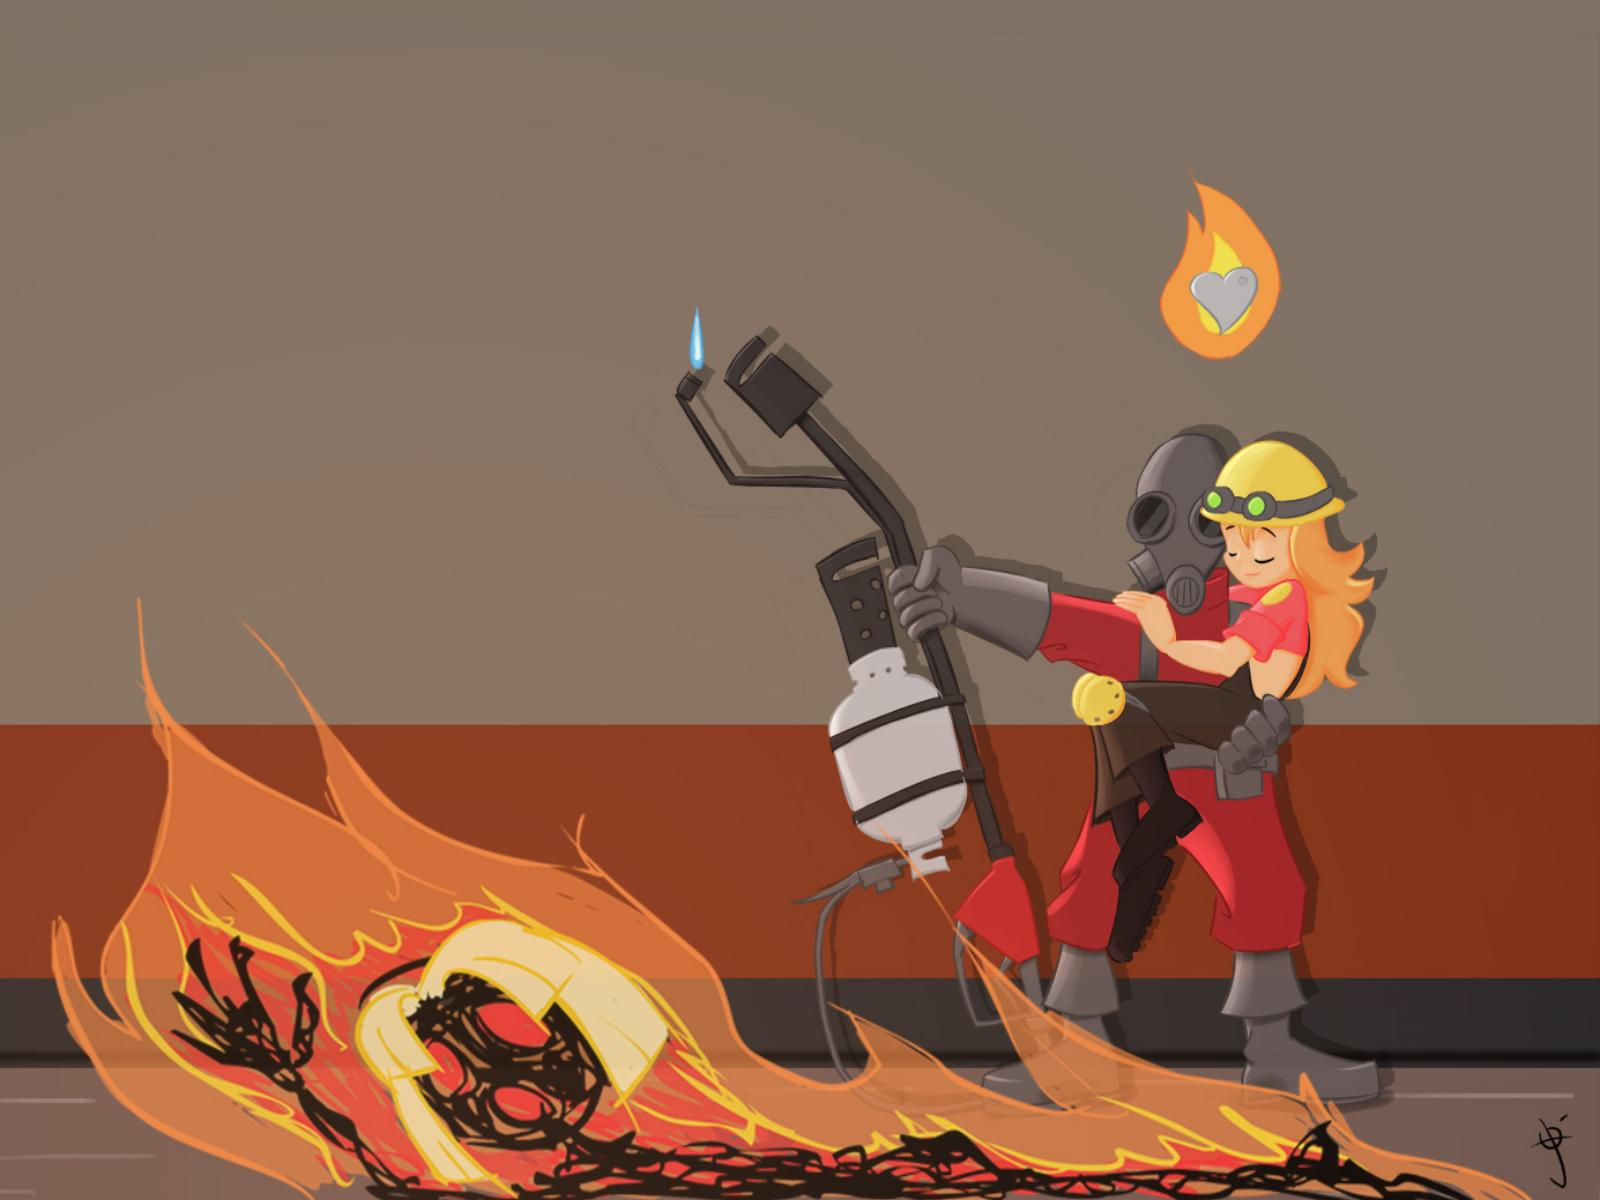 Team Fortress 2 Computer Wallpapers, Desktop Backgrounds | 1600x1200 ...